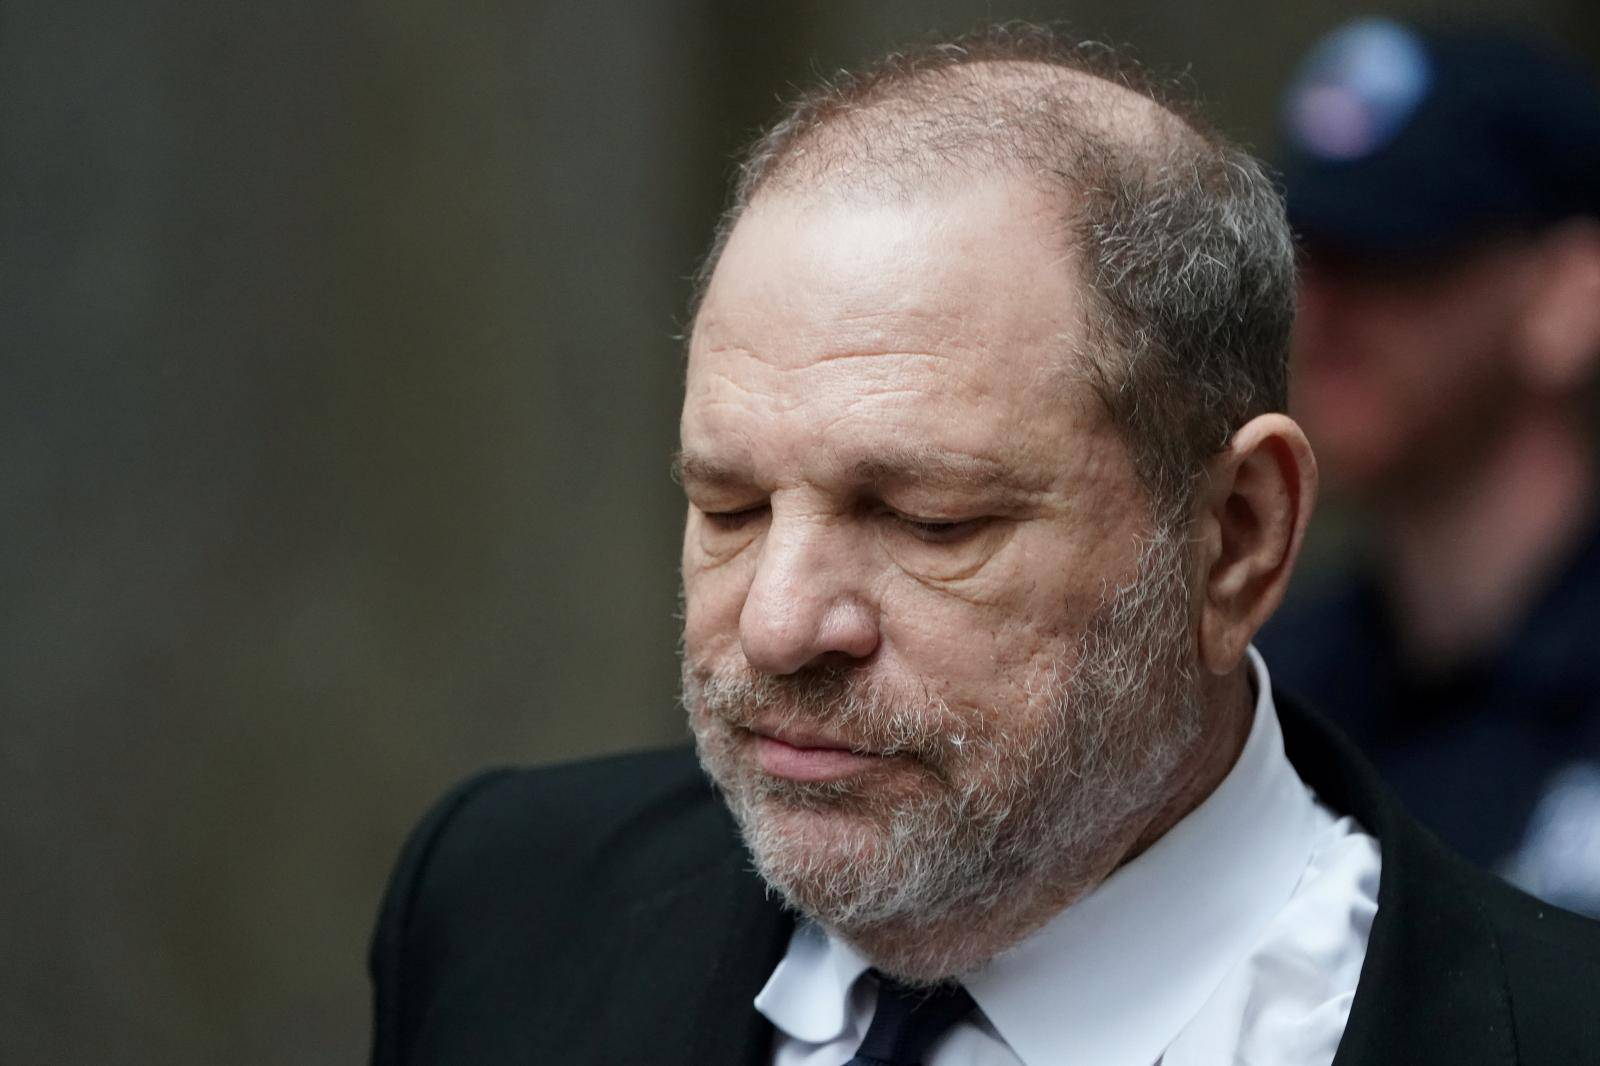 FILE PHOTO: Film producer Harvey Weinstein departs from a court hearing in New York